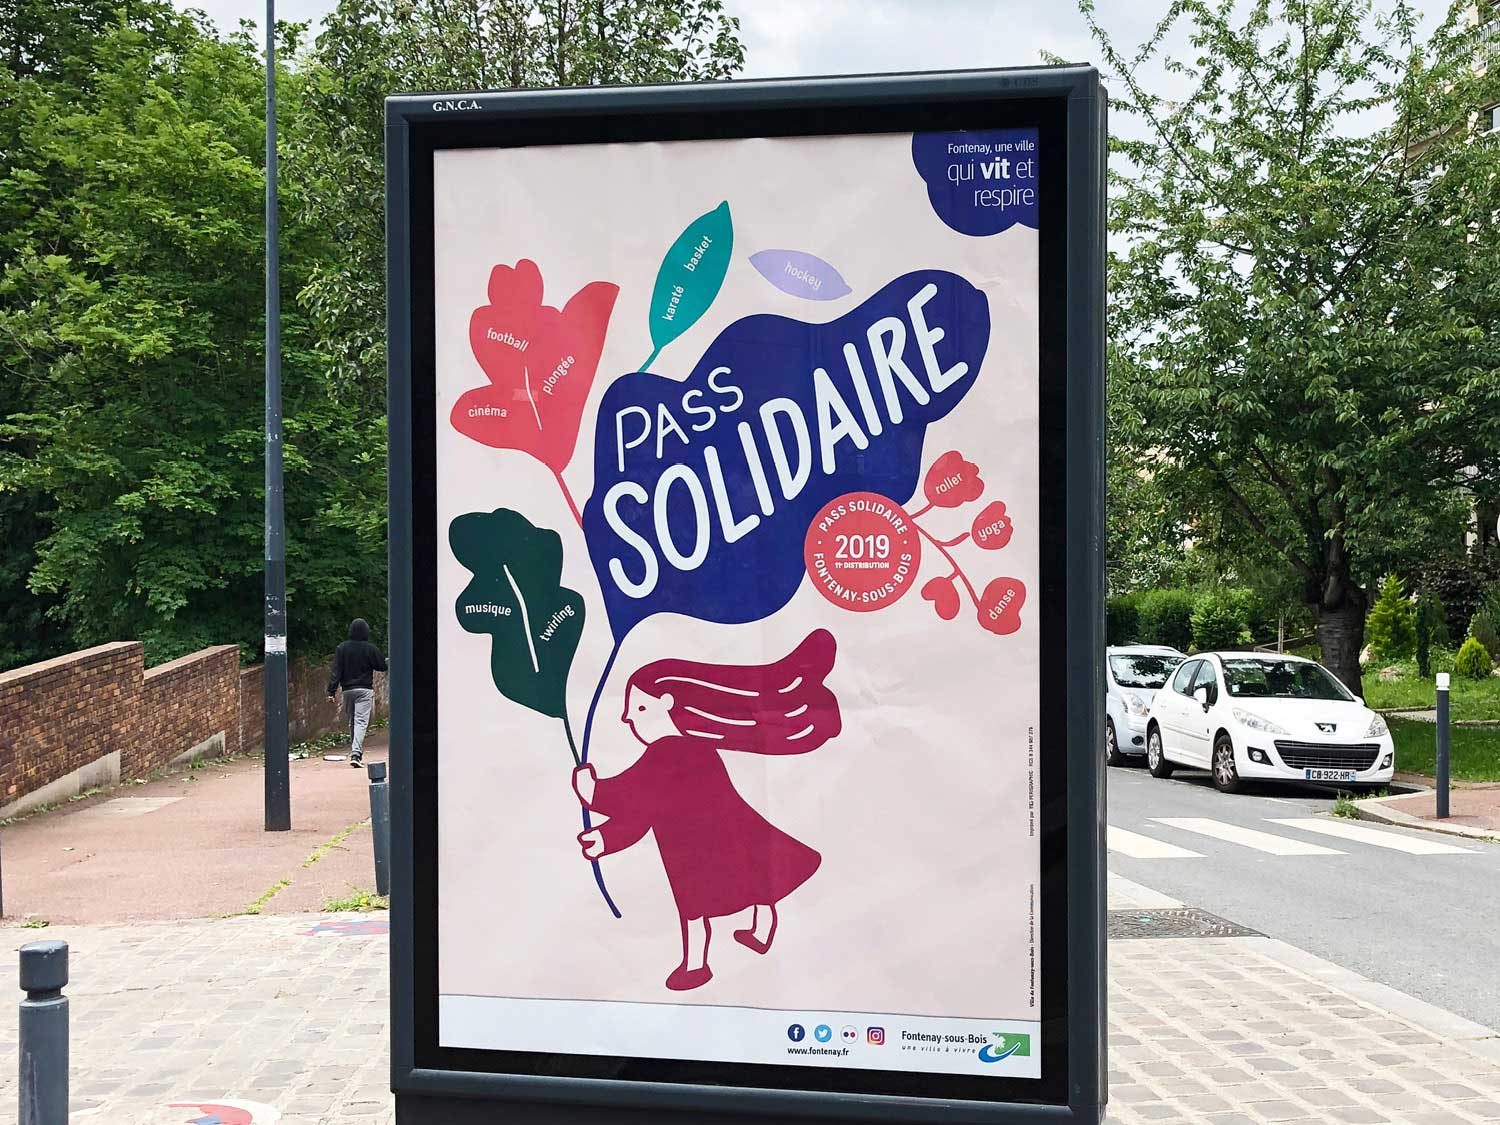 Pass solidaire 2019, affiche